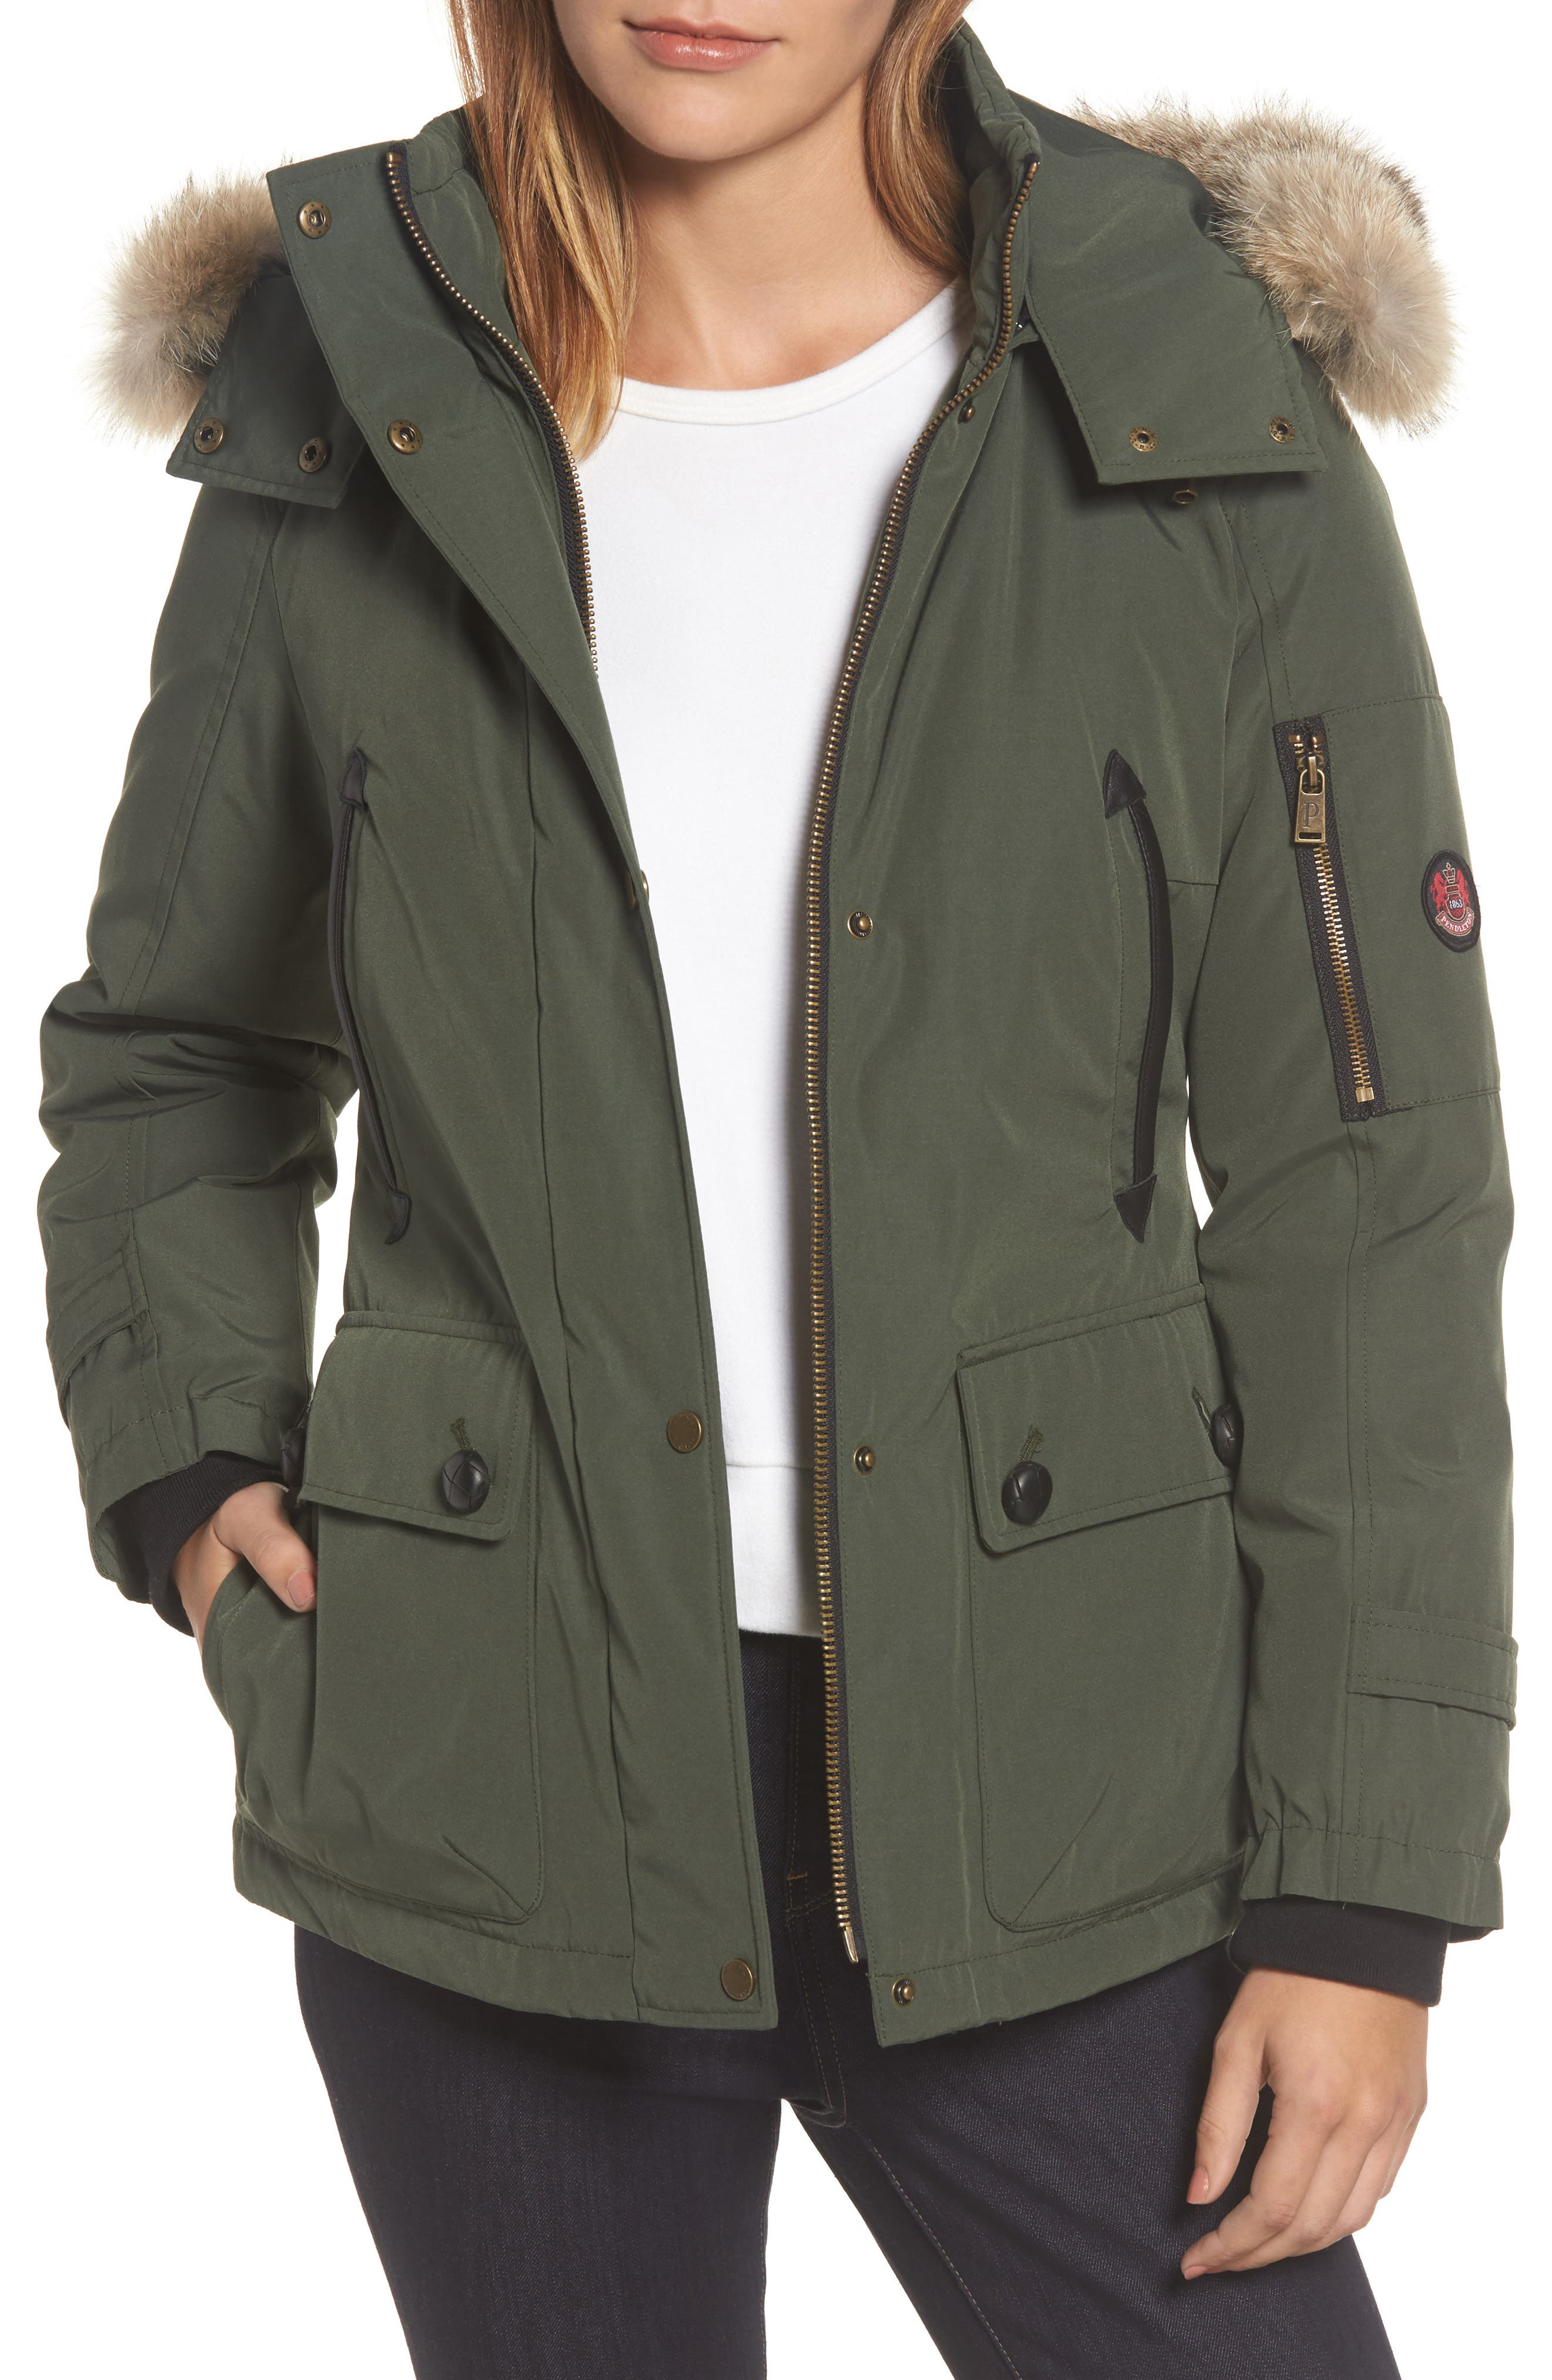 Bachelor Water Repellent Hooded Down Parka with Genuine Coyote Fur Trim,                         Main,                         color, Olive